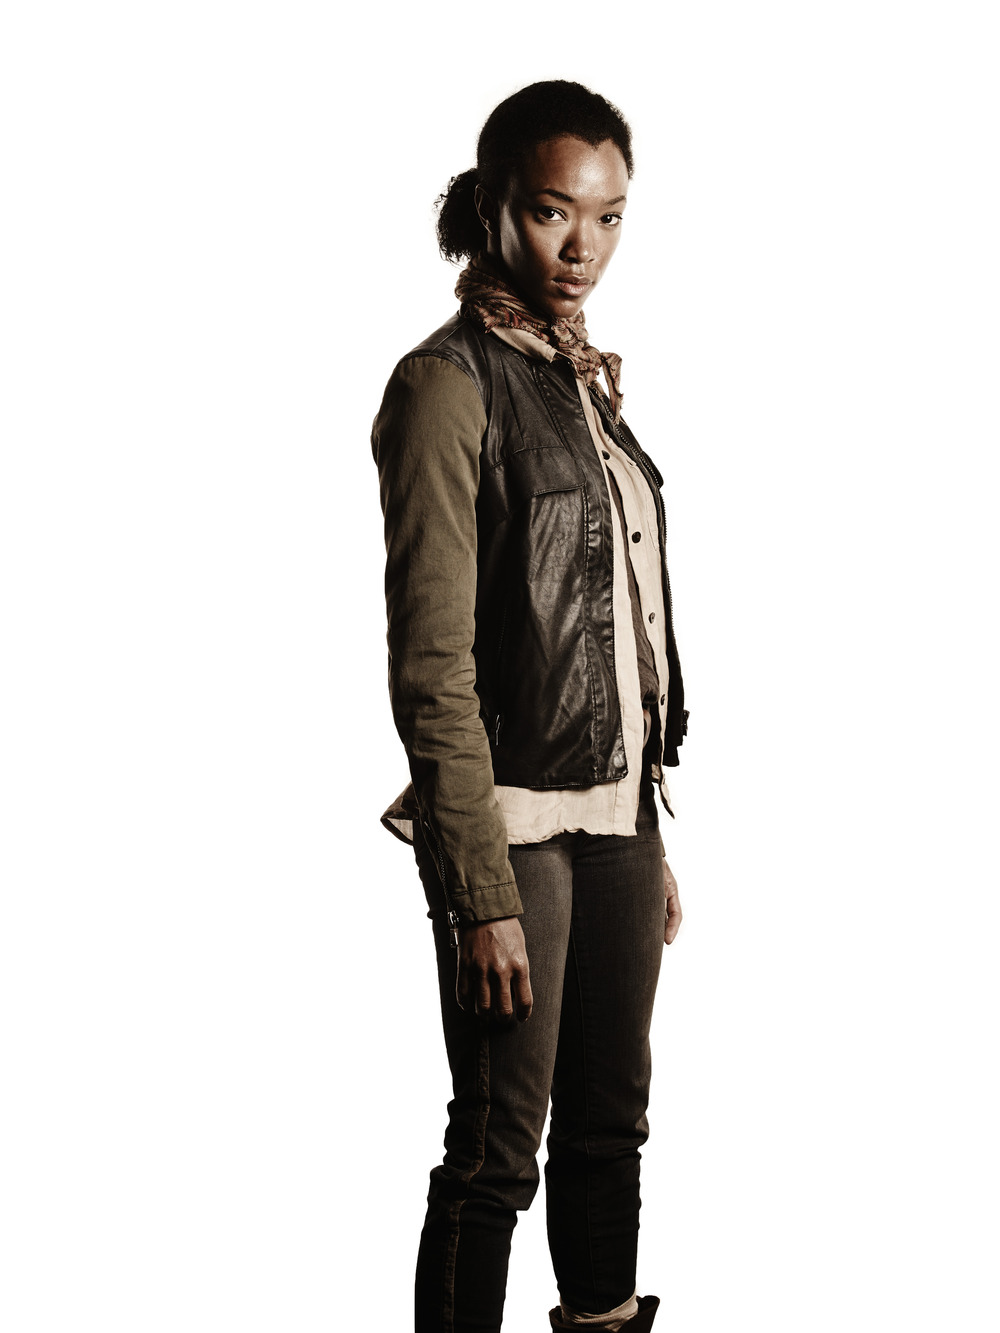 The Walking Dead's Sonequa Martin-Green Says Chad Coleman Is Like Her Brother